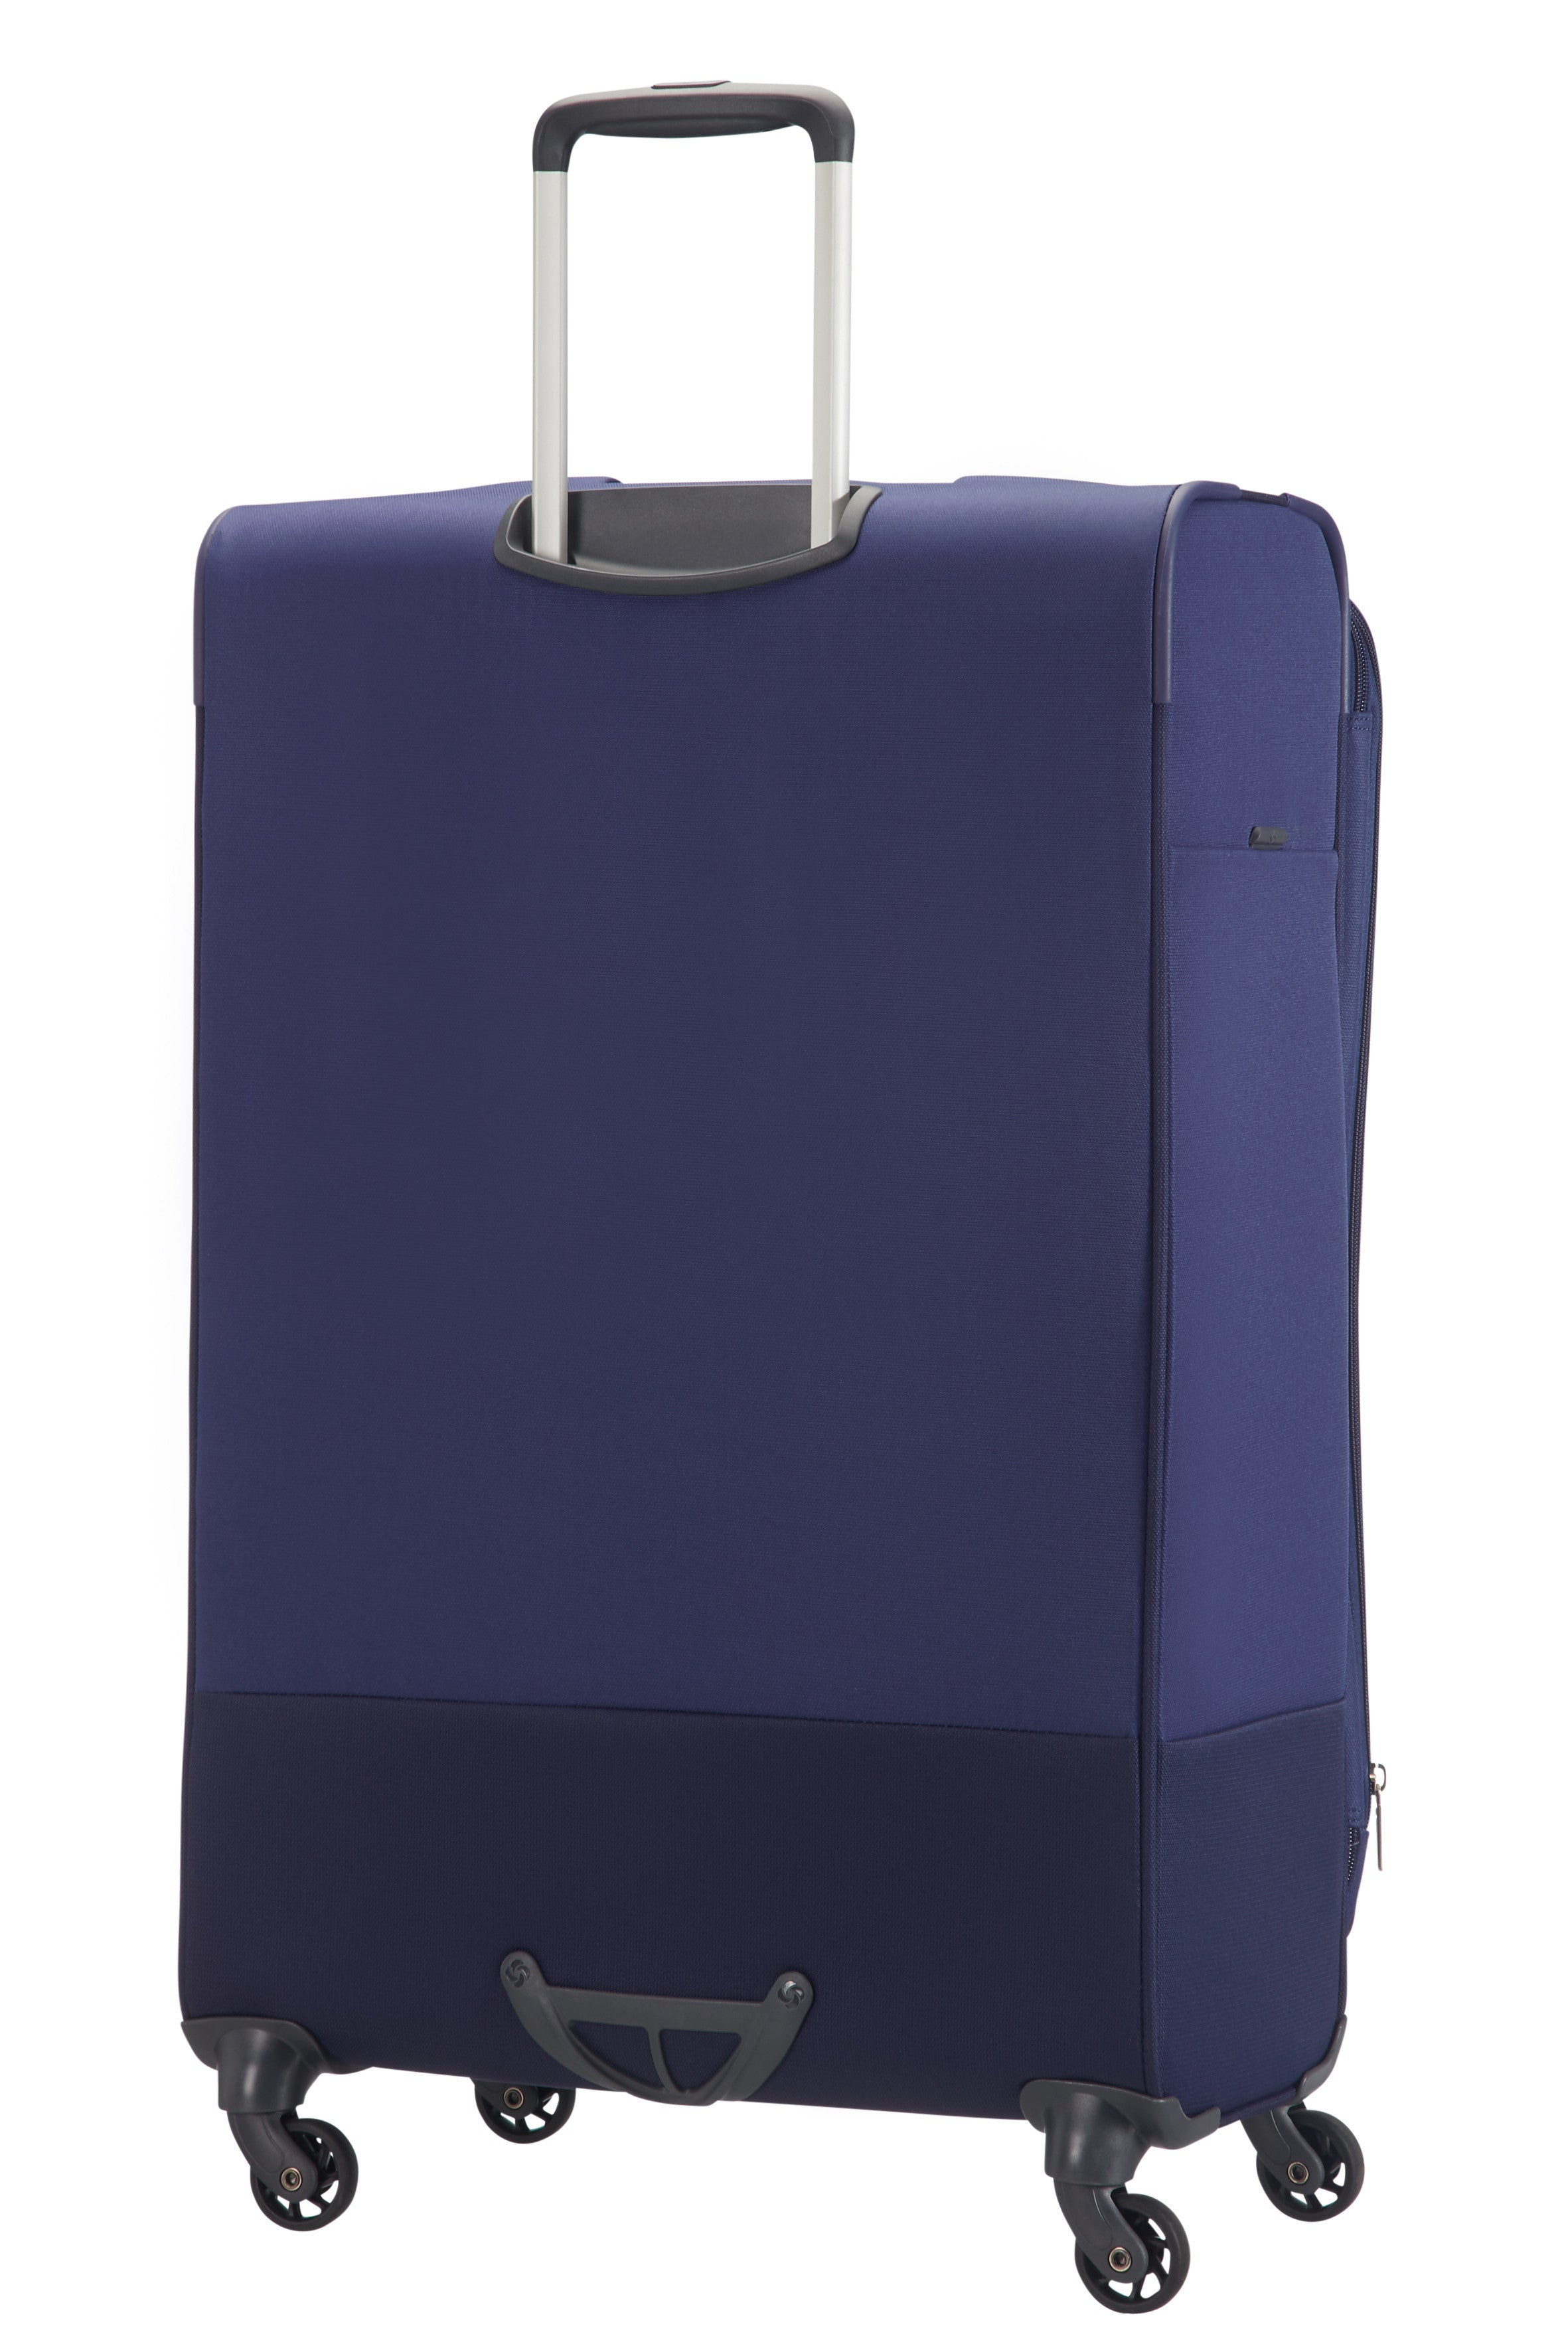 Samsonite Base Boost Spinner 78cm EXP Blue